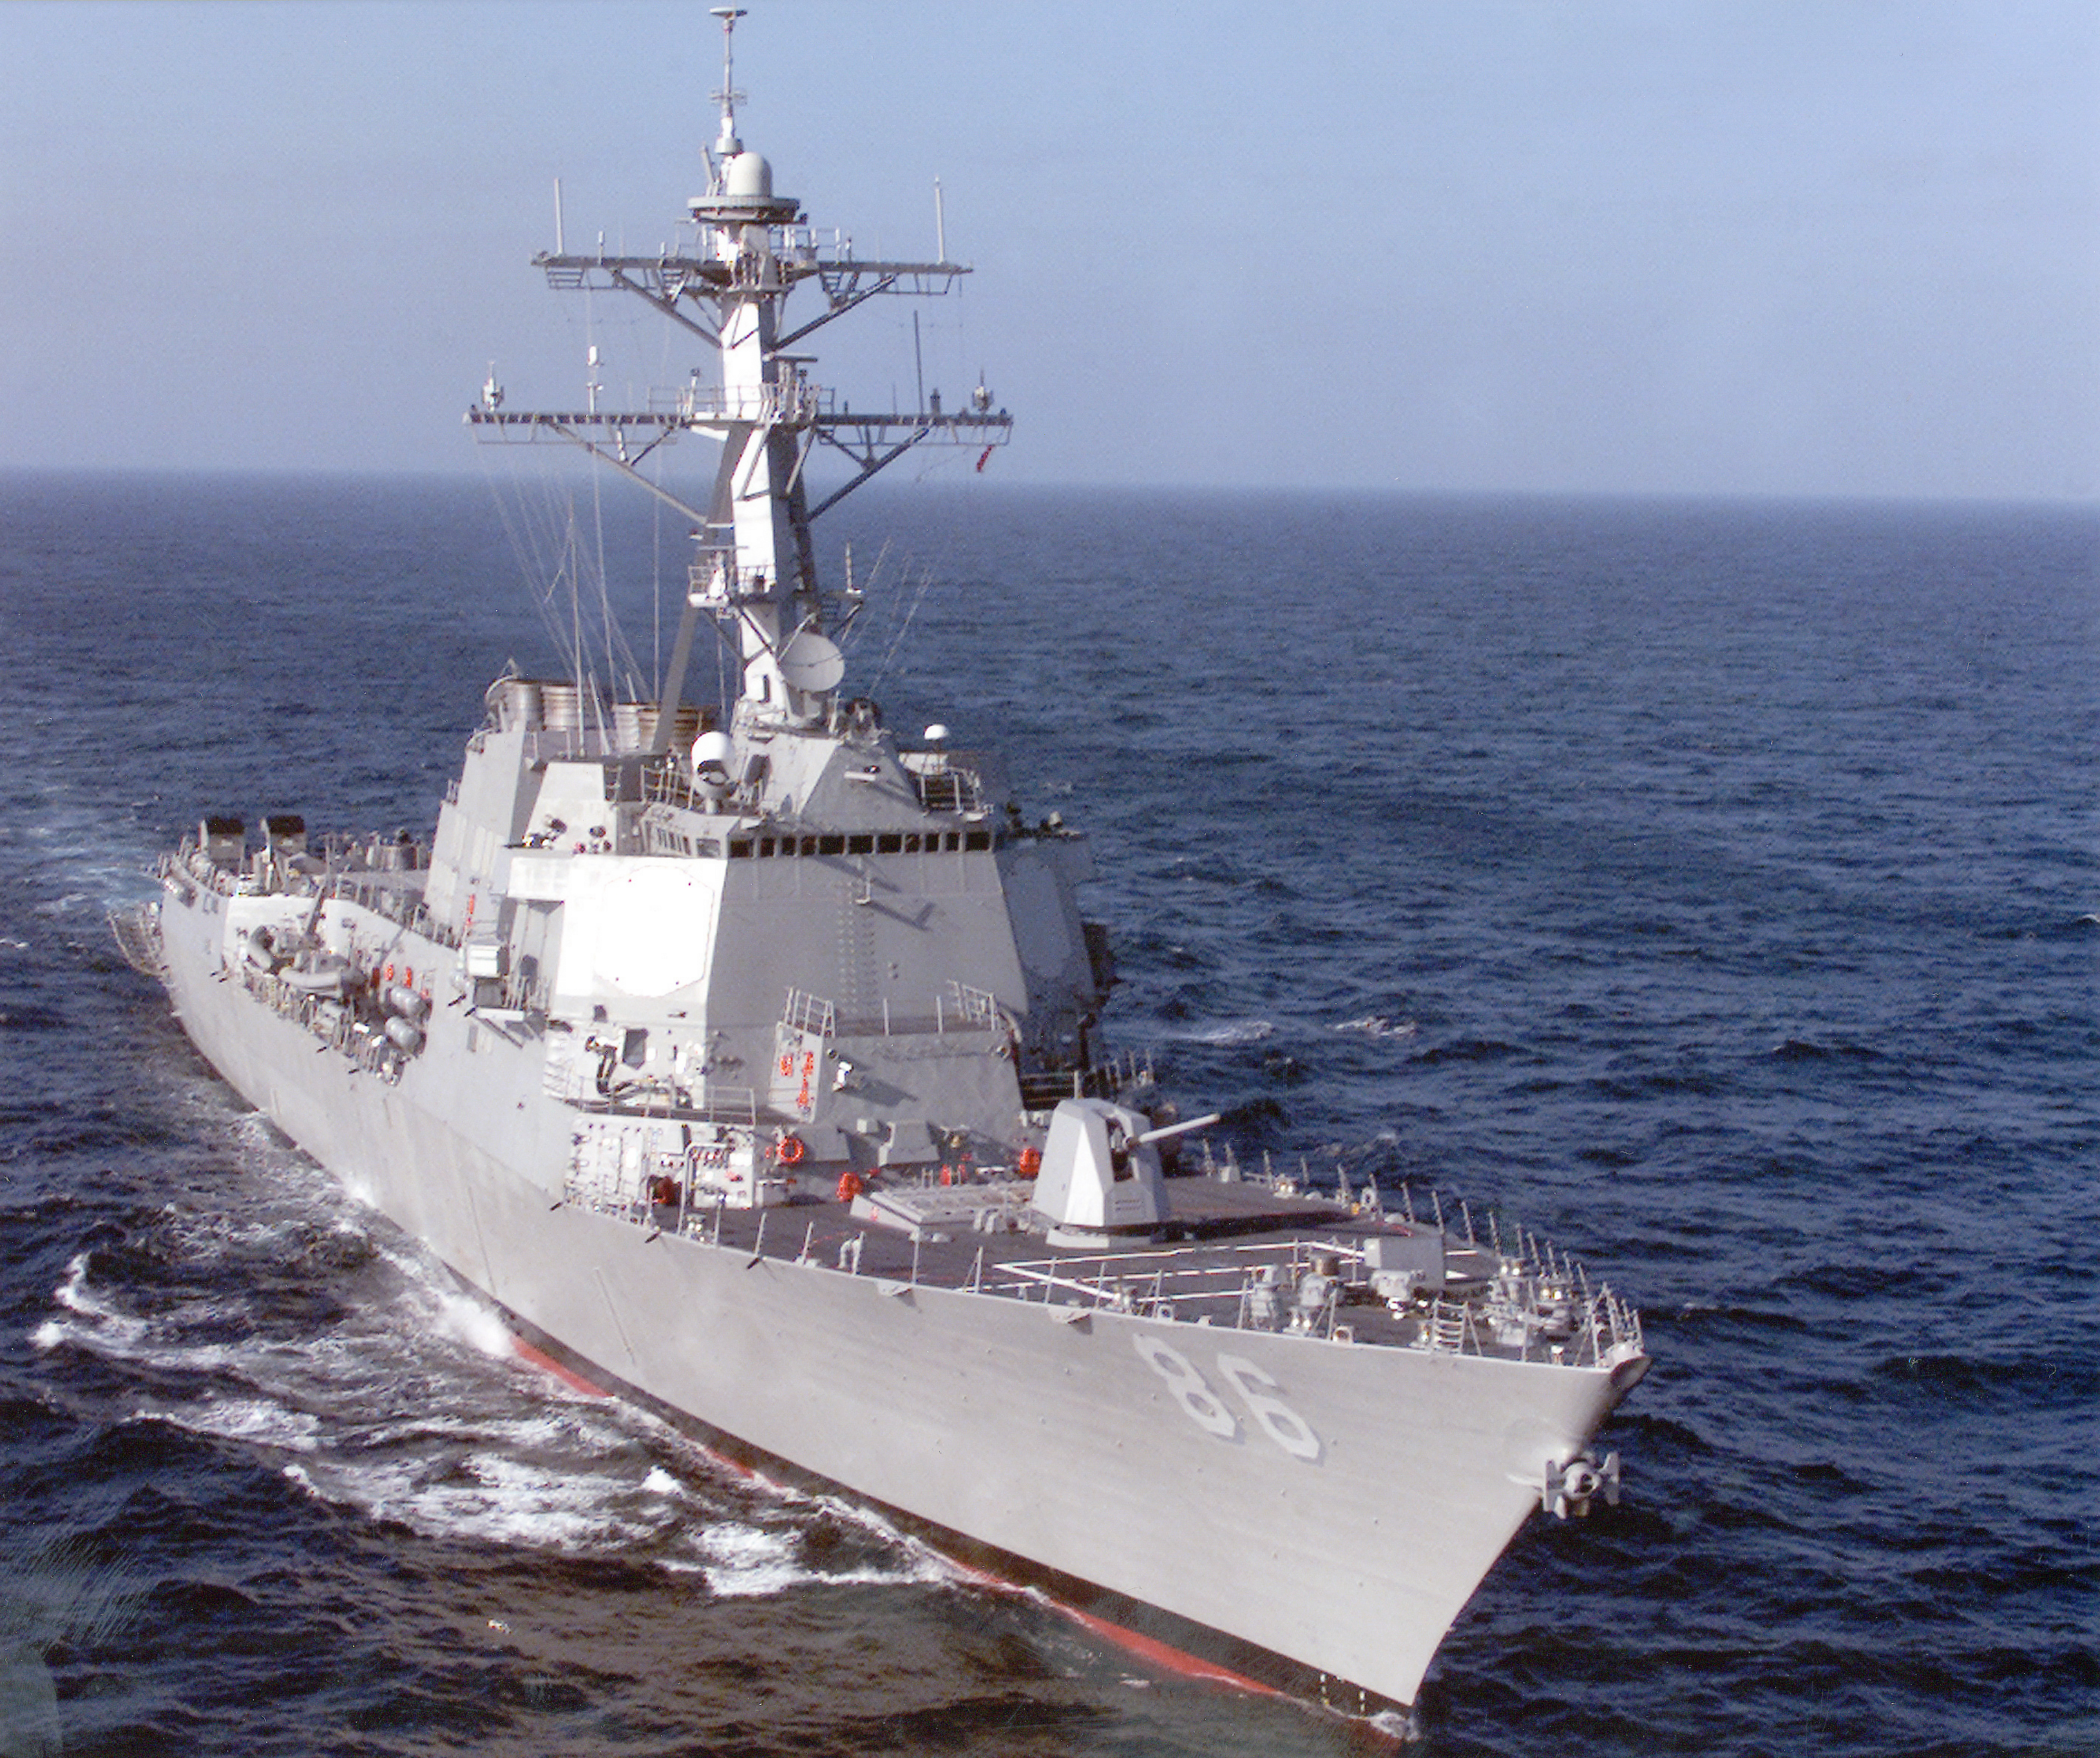 USS Shoup underway in the Gulf of Mexico.